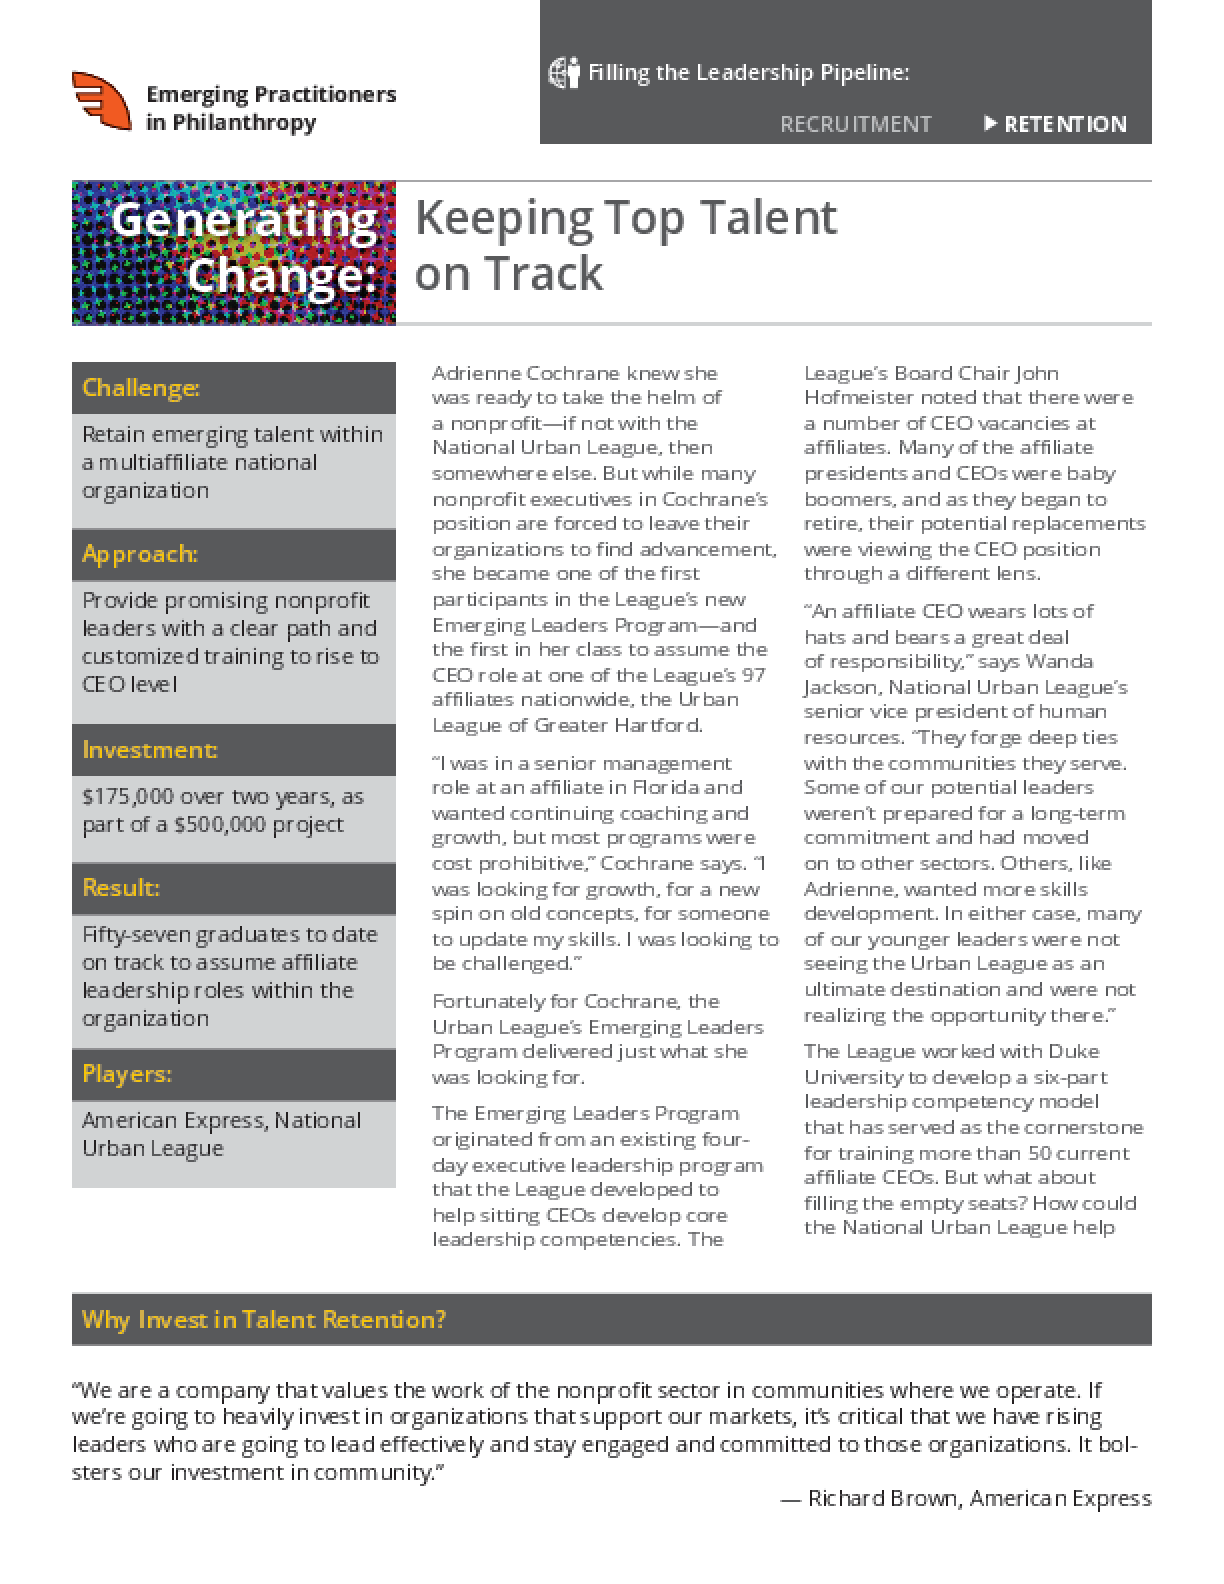 Generating Change: Keeping Top Talent on Track